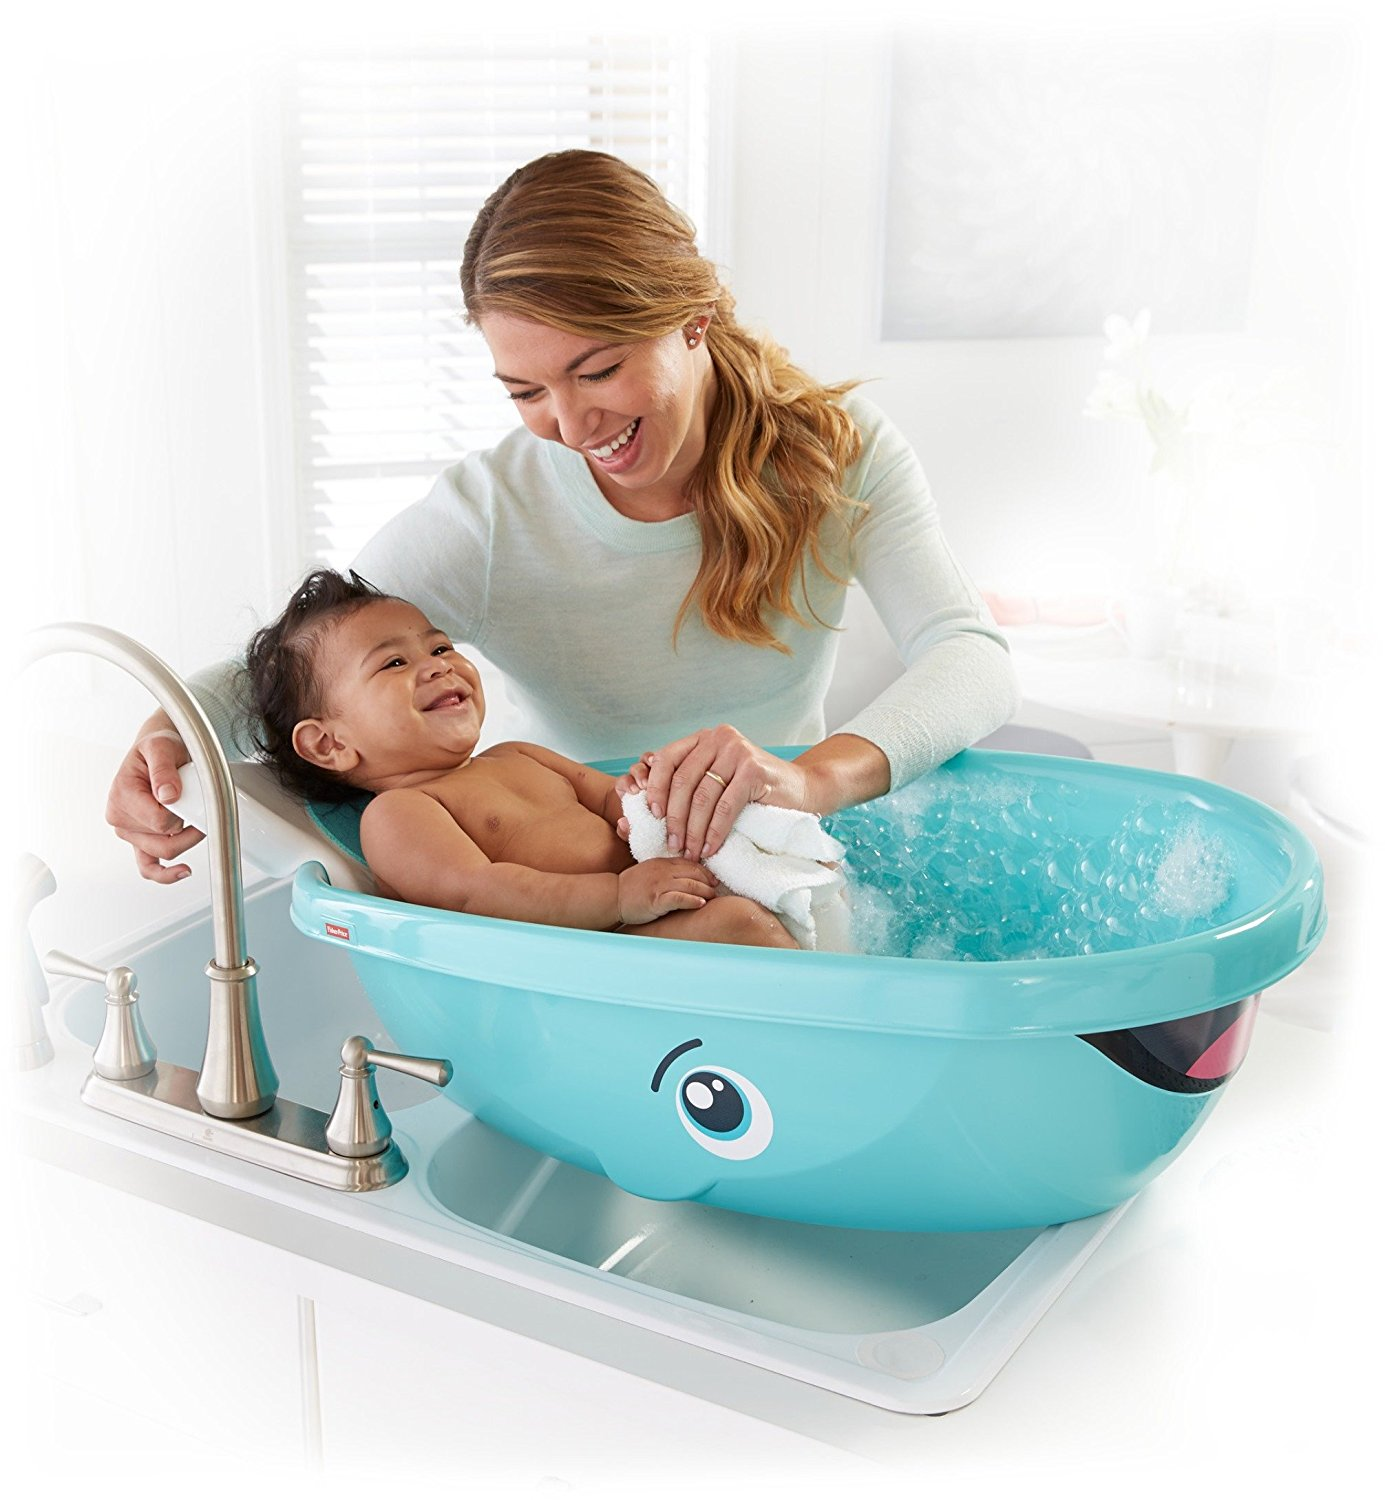 Fisher-Price Whale of a Tub Bathtub Only $16.49 (Reg. $25)